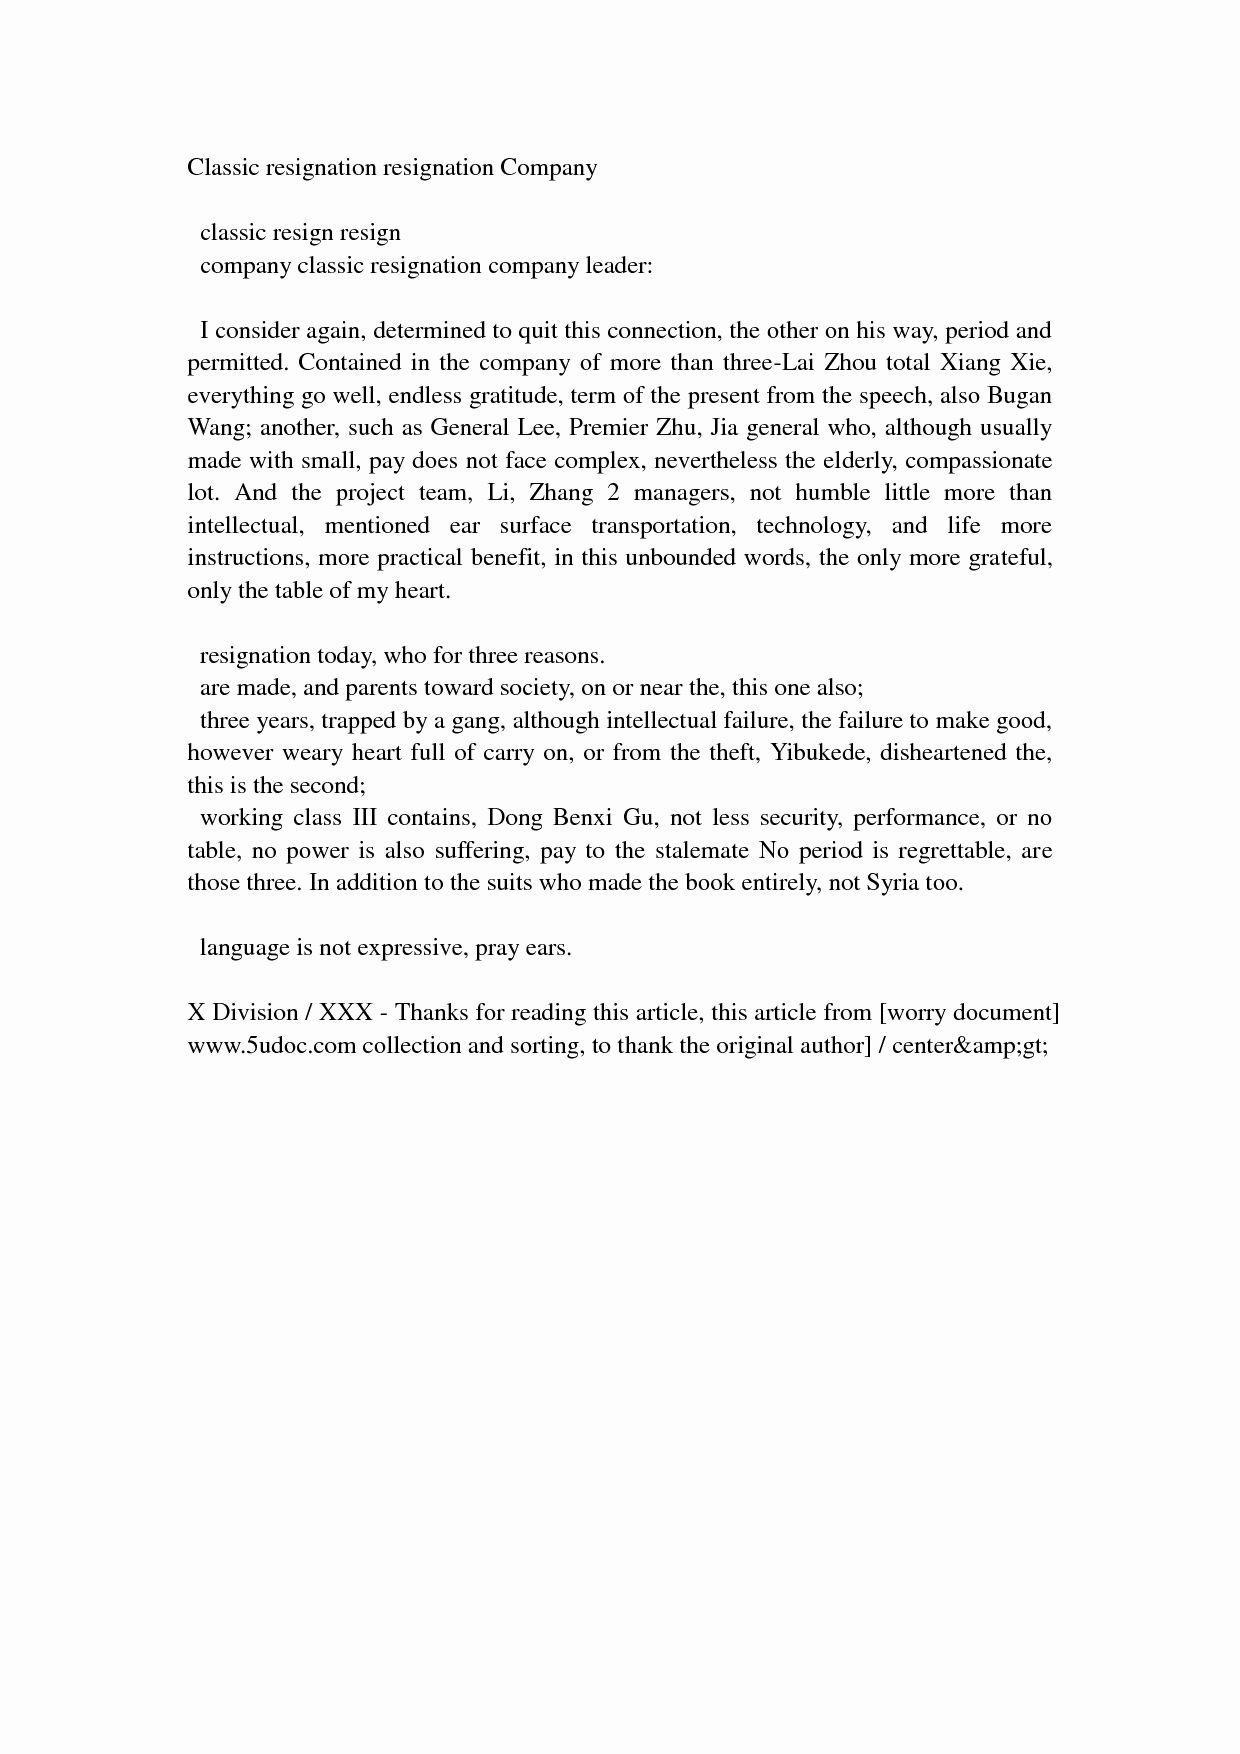 resignation letter effective immediately lovely best s of college admission resume objective examples call center team leader for career change with no experience sample